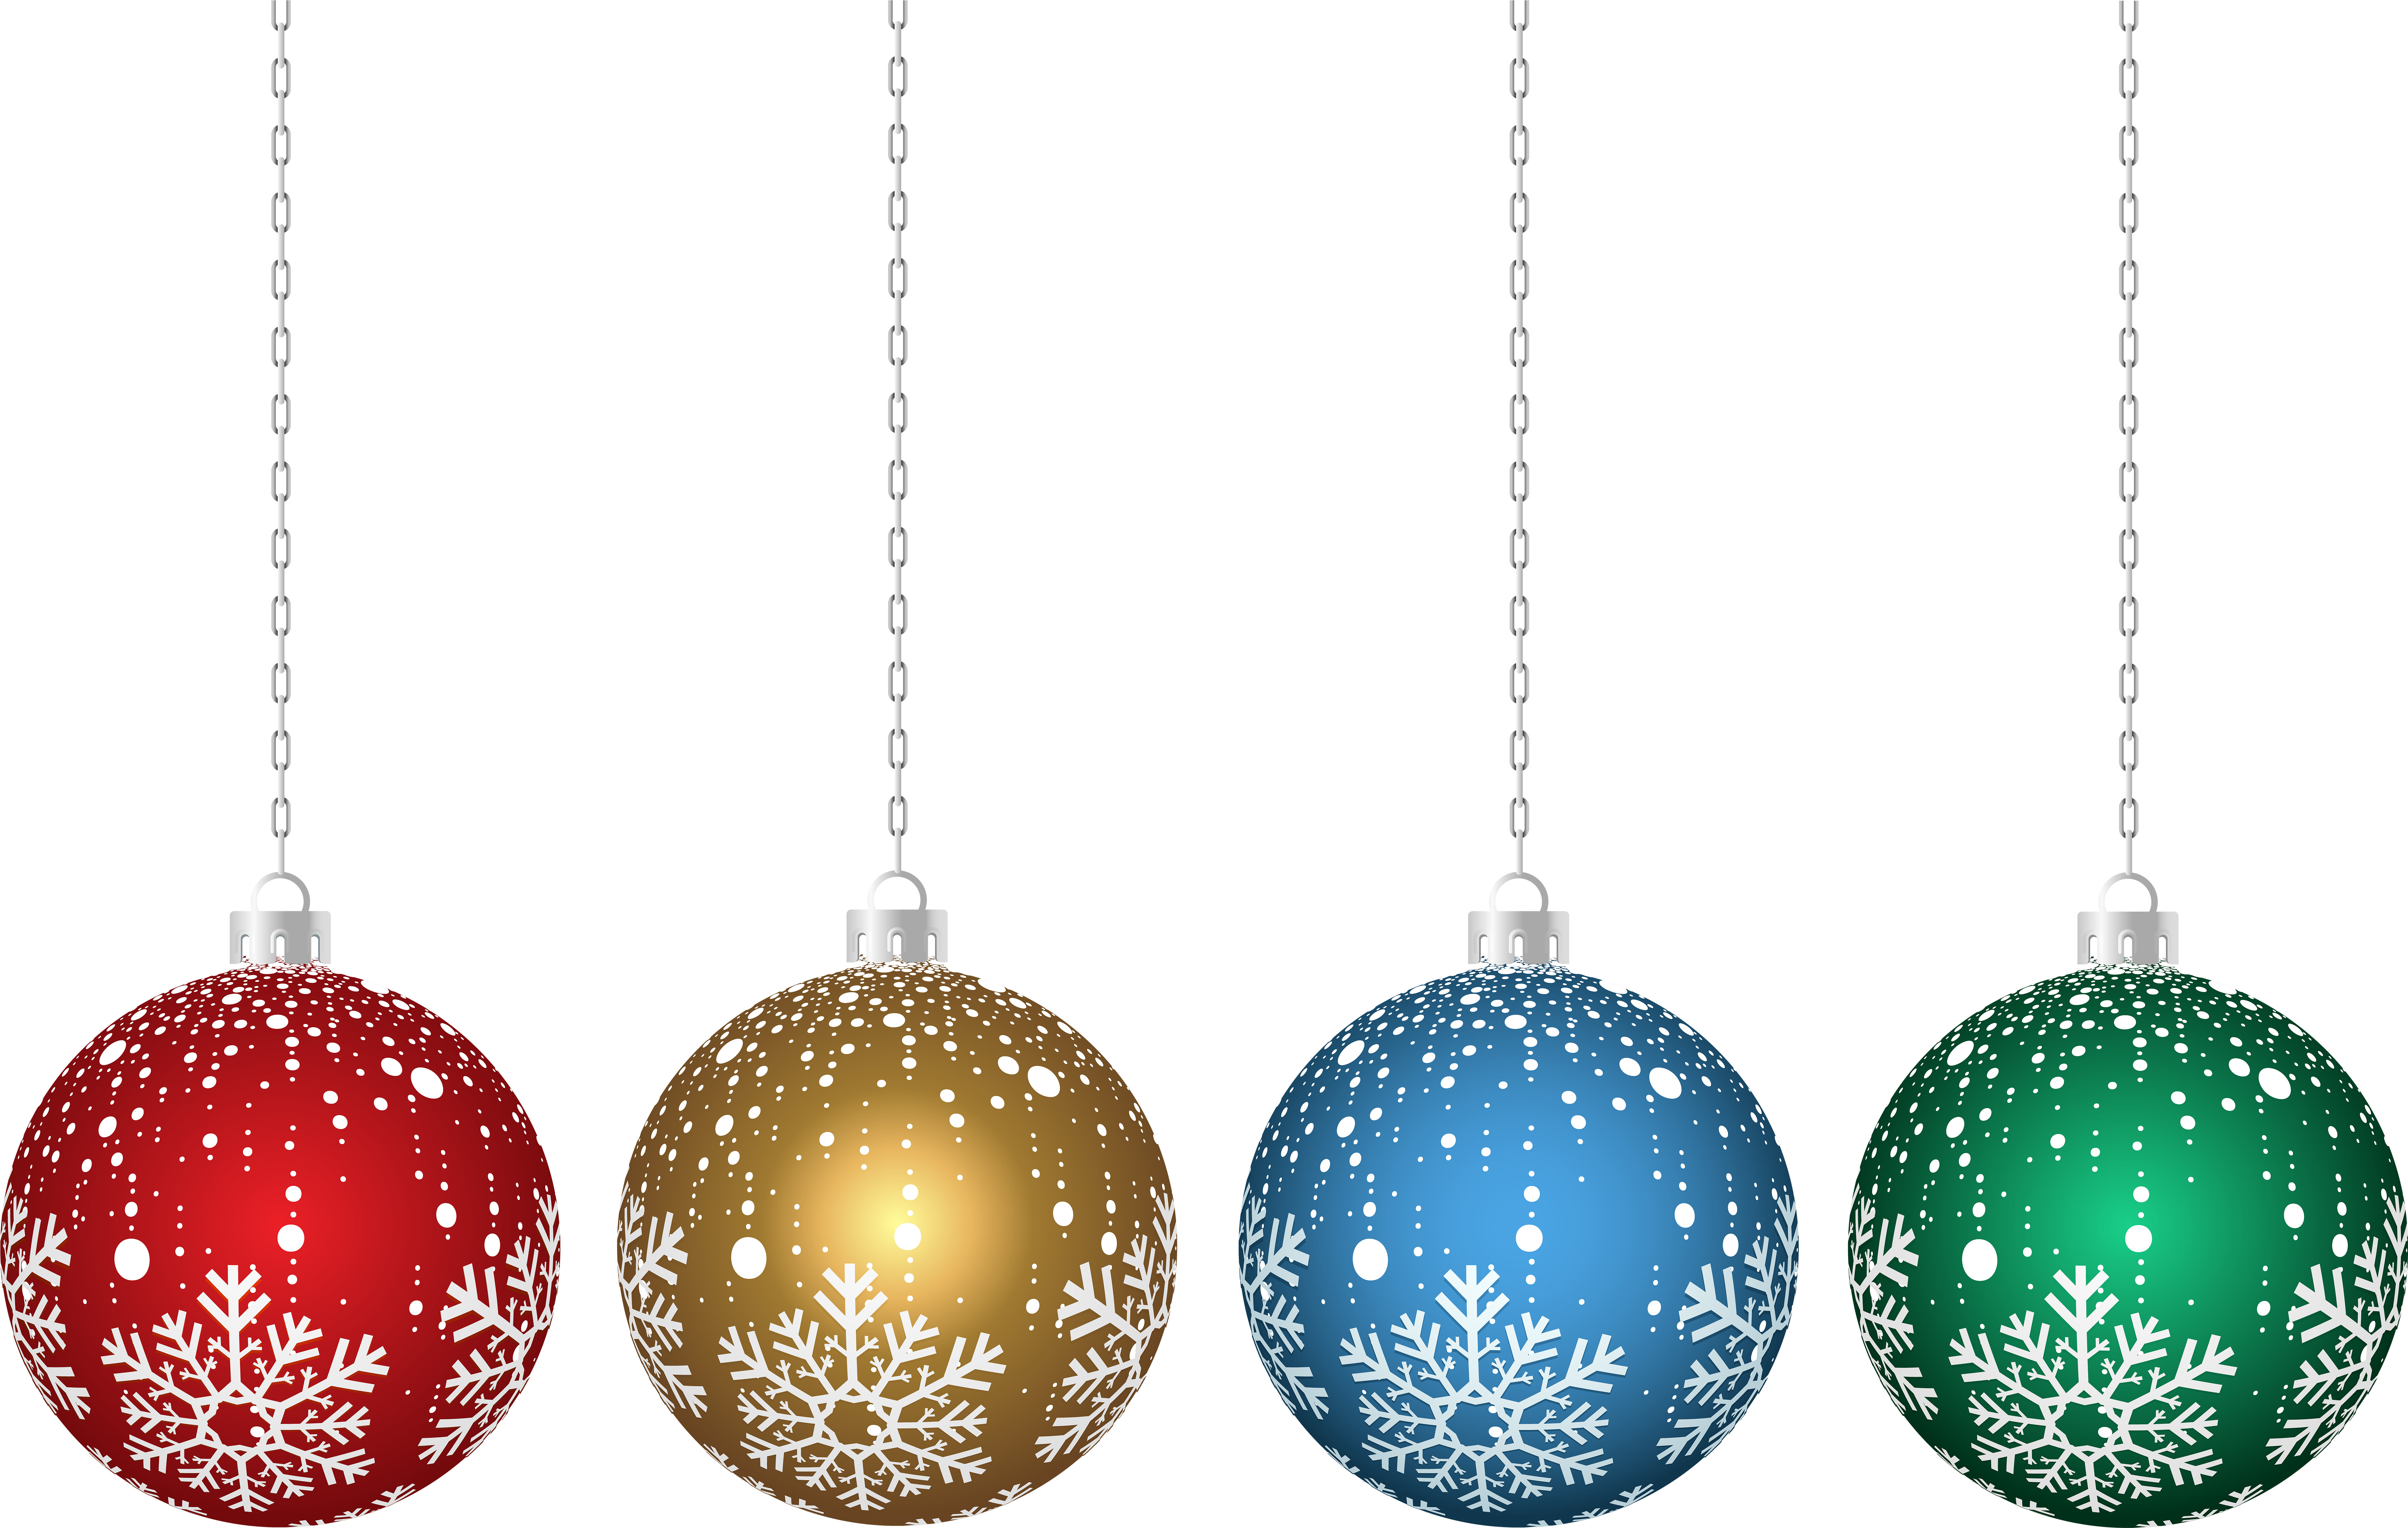 Transparent Hanging Christmas Ornaments Png - Transparent Christmas Clipart Ornaments Png (8000x5006), Png Download